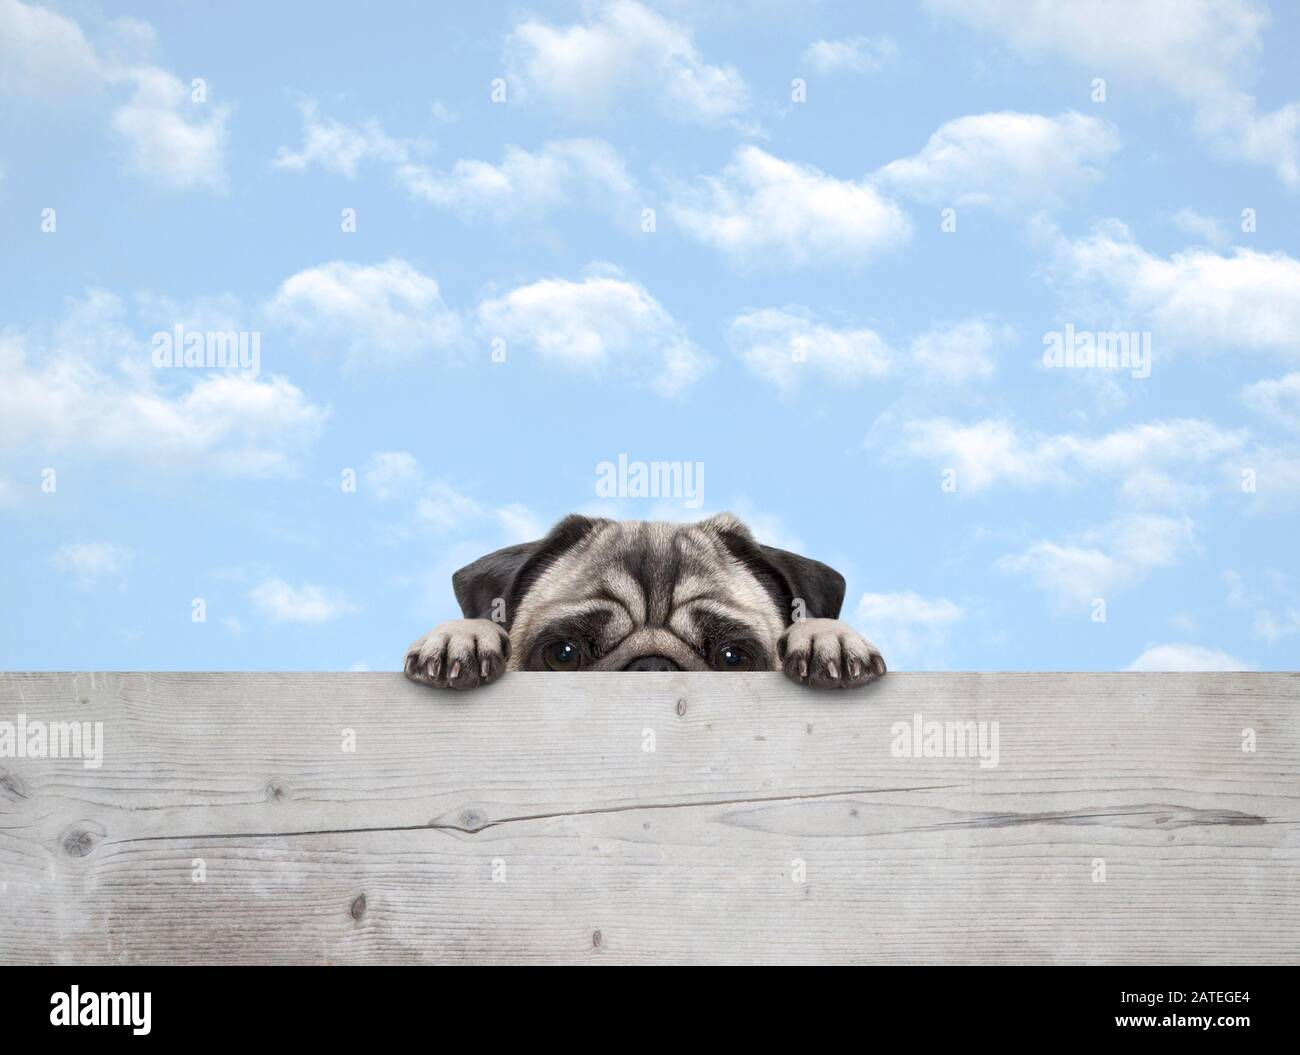 cute shy peekaboo pug puppy dog peeking, with paws on wooden fence banner, with blue sky background Stock Photo